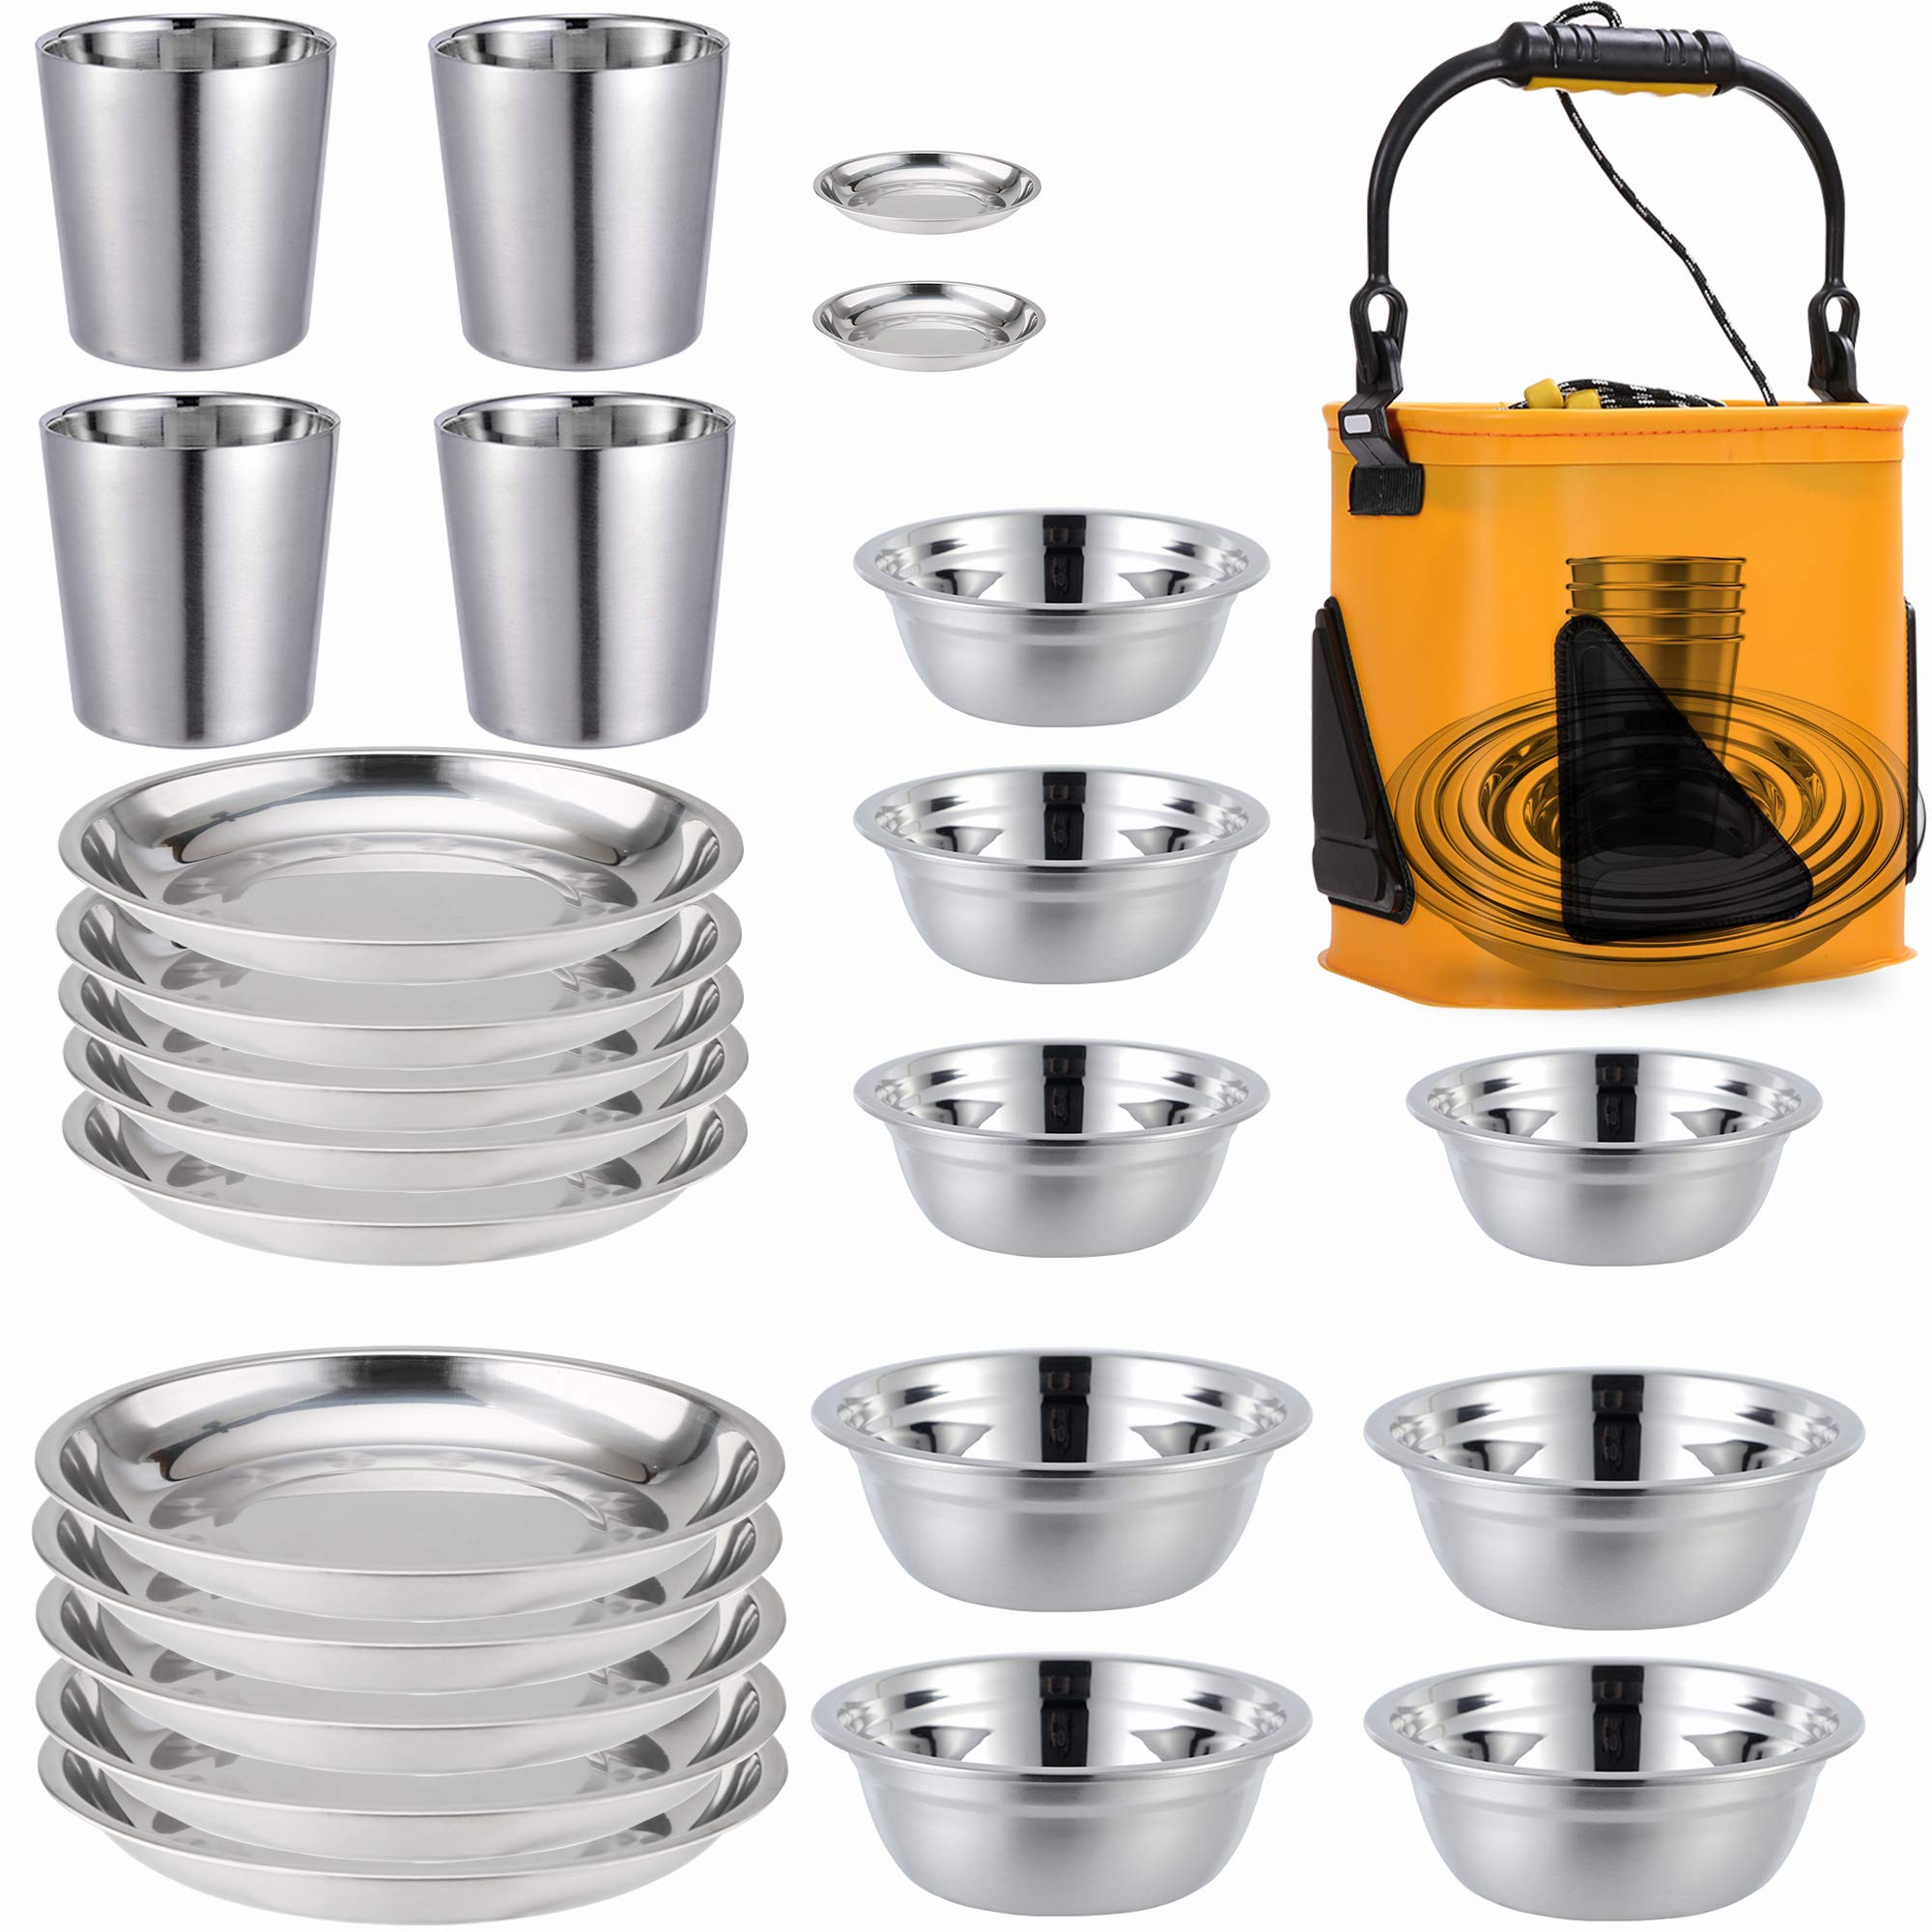 Stainless Steel Plates,Bowls,Cups and Spice Dish. Camping Set (24-Piece Set) 3.5inch to 8.6inch. Camping, Hiking, Beach,Outdoor Use Incl. Collapsible Water Bucket by COTOM